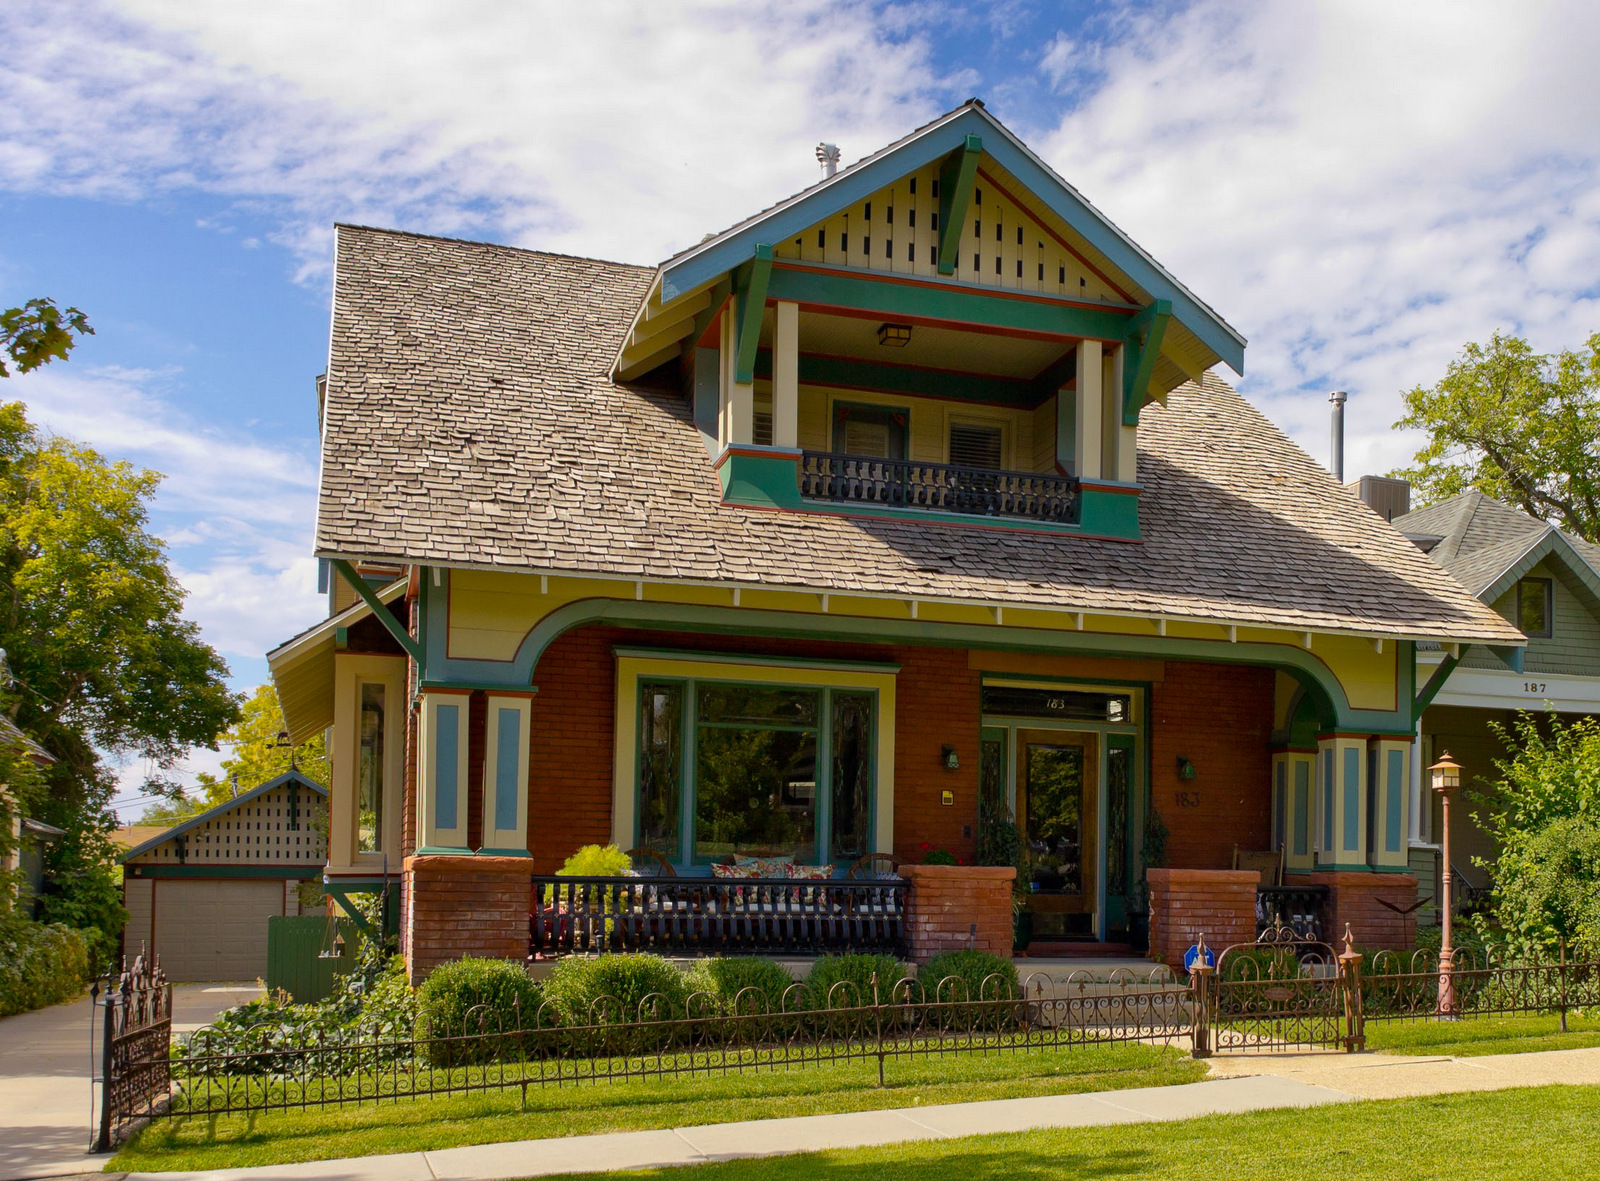 The Craftsman Bungalow Results Oriented Real Estate Service